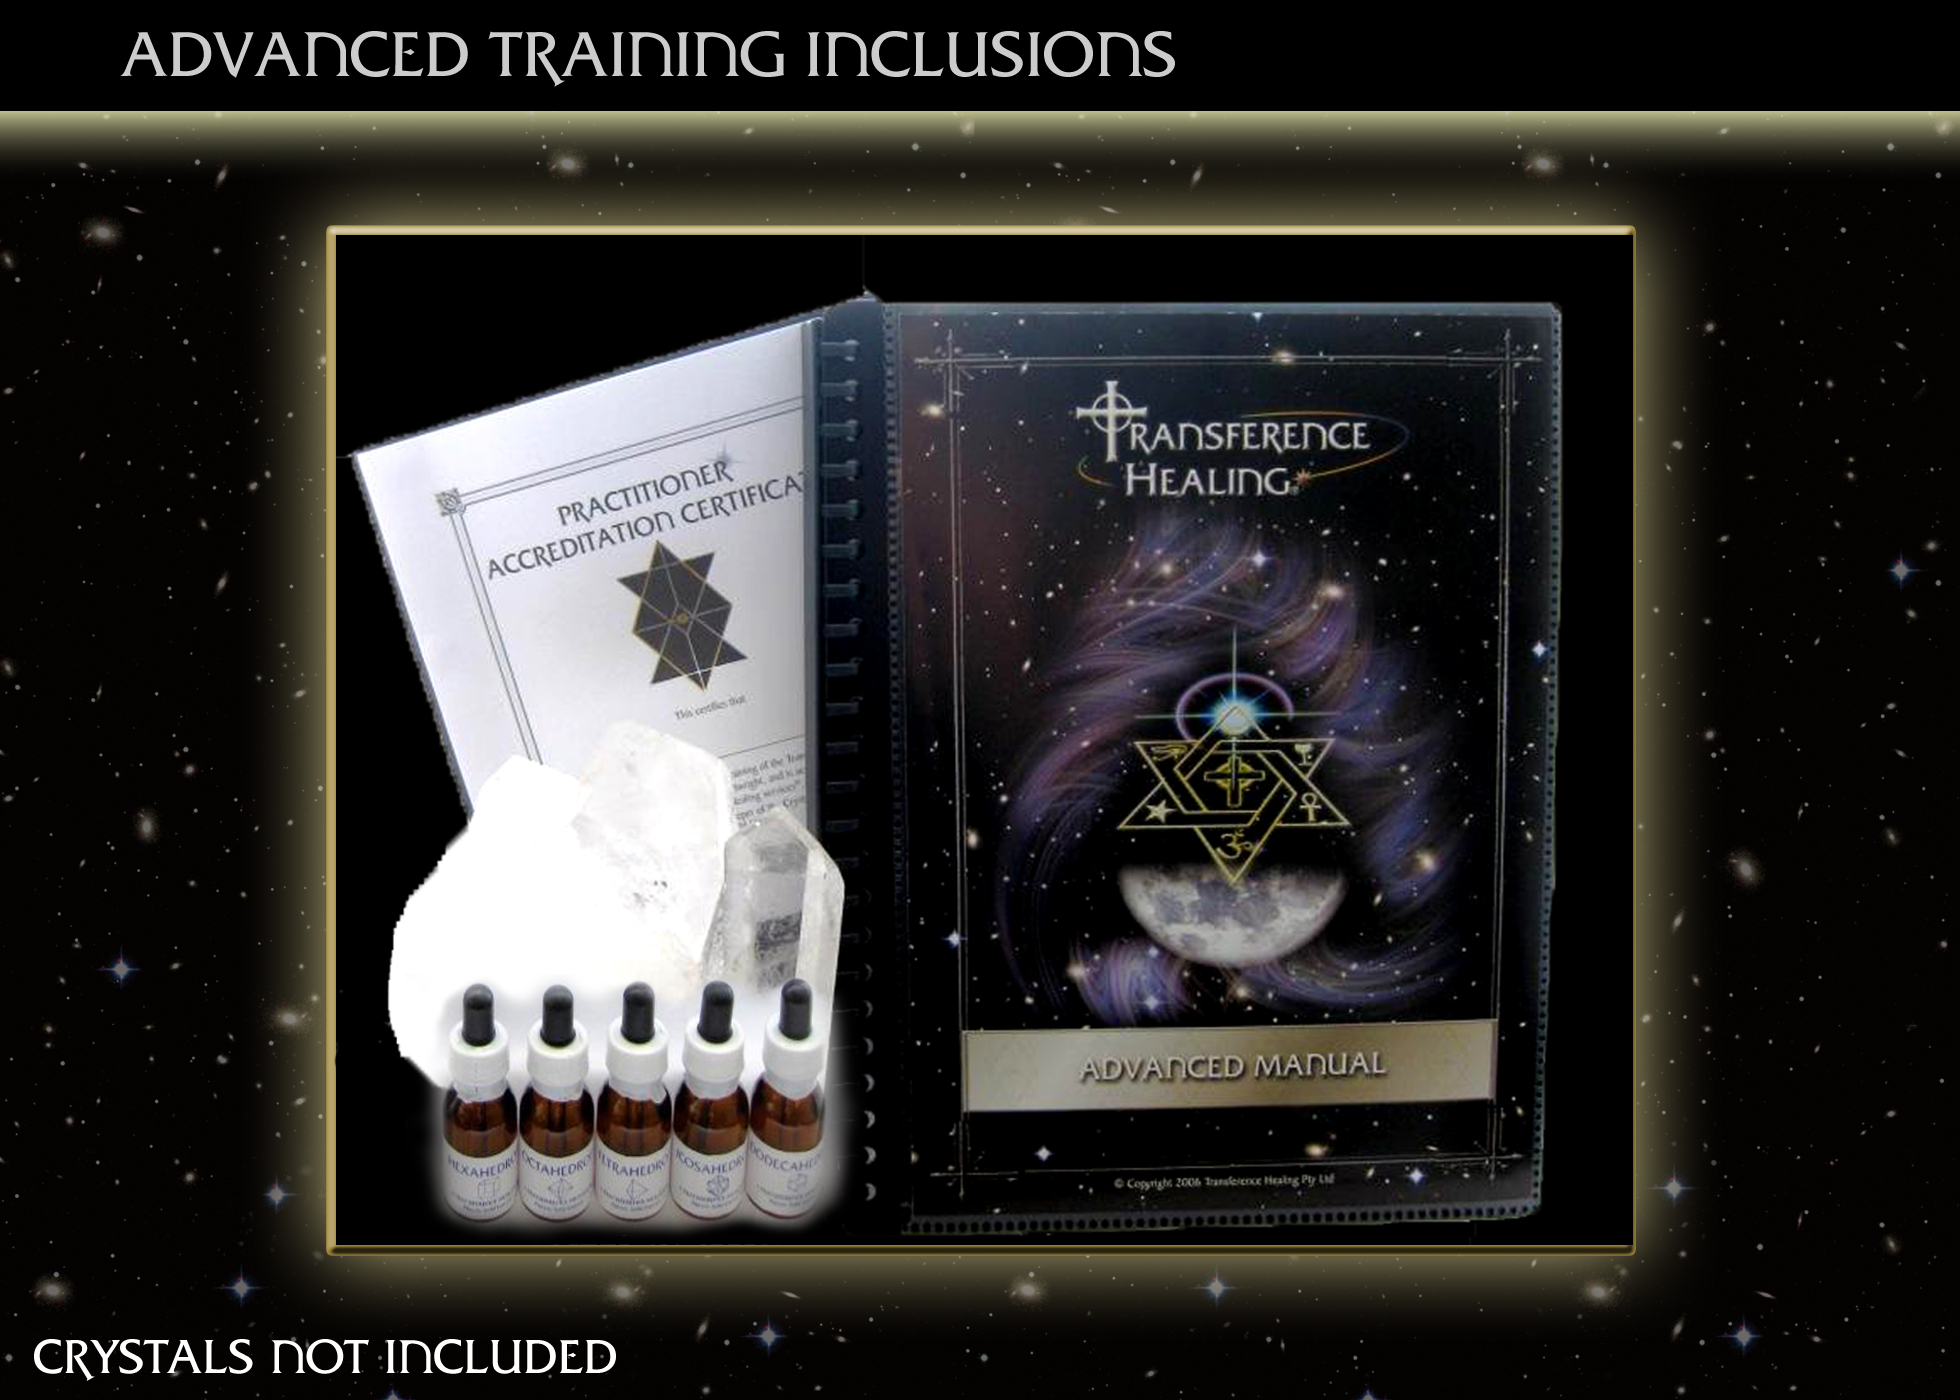 ADVANCED TRAINING INCLUSIONS